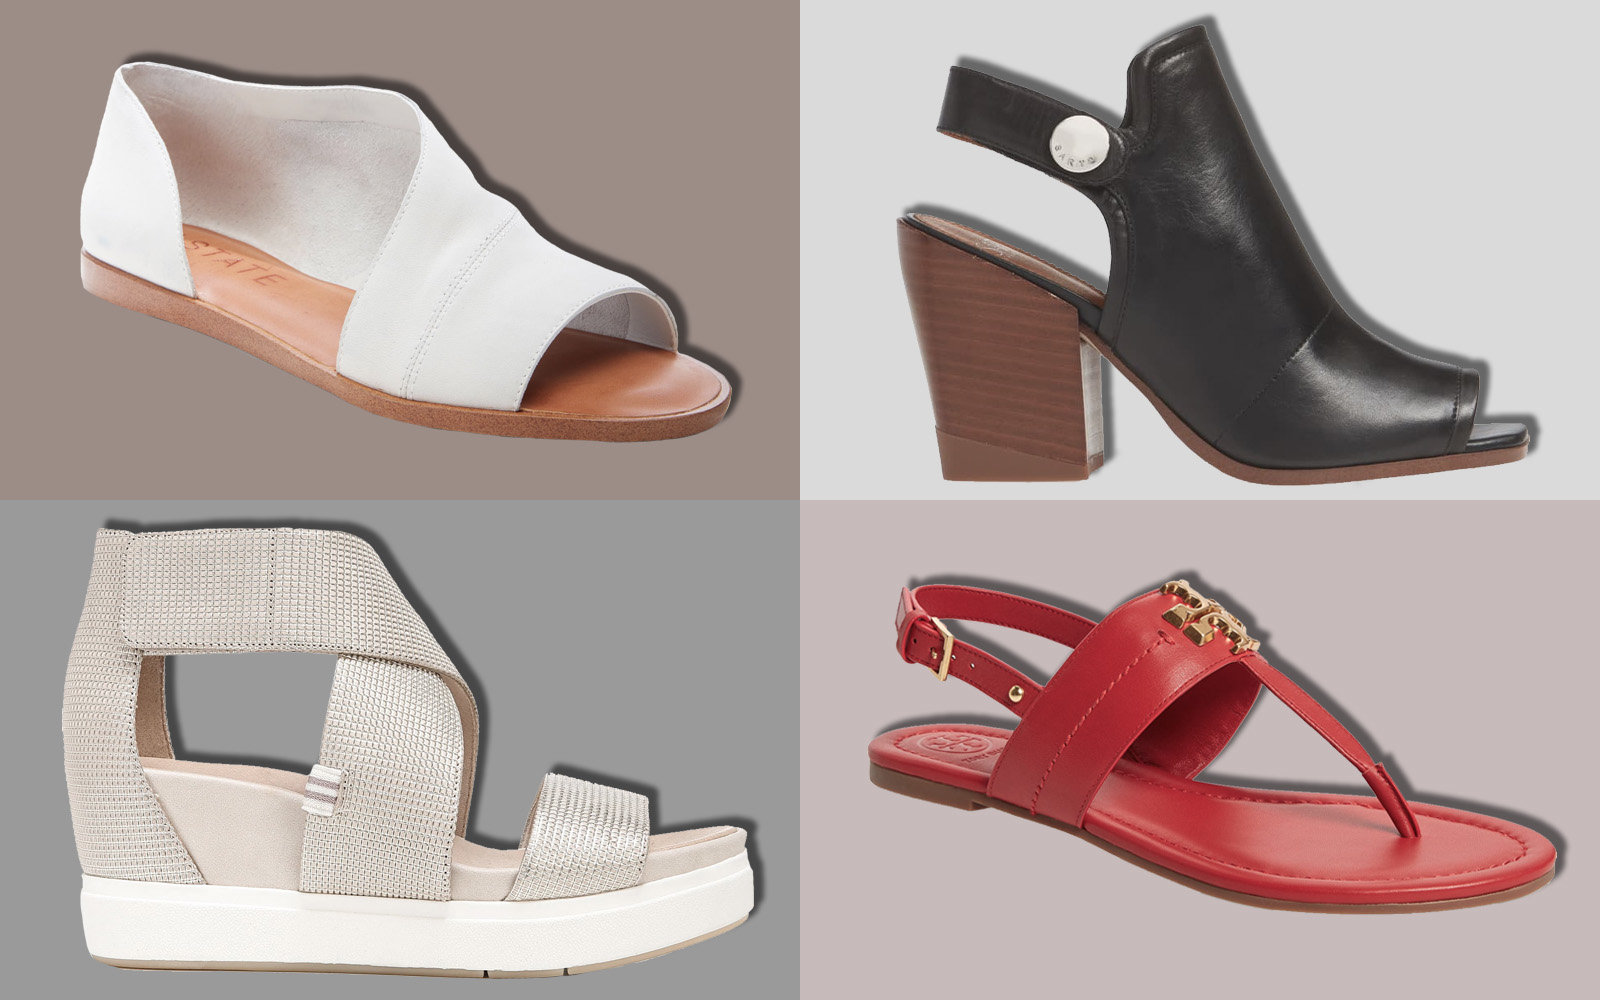 Sandals on Sale at Nordstrom